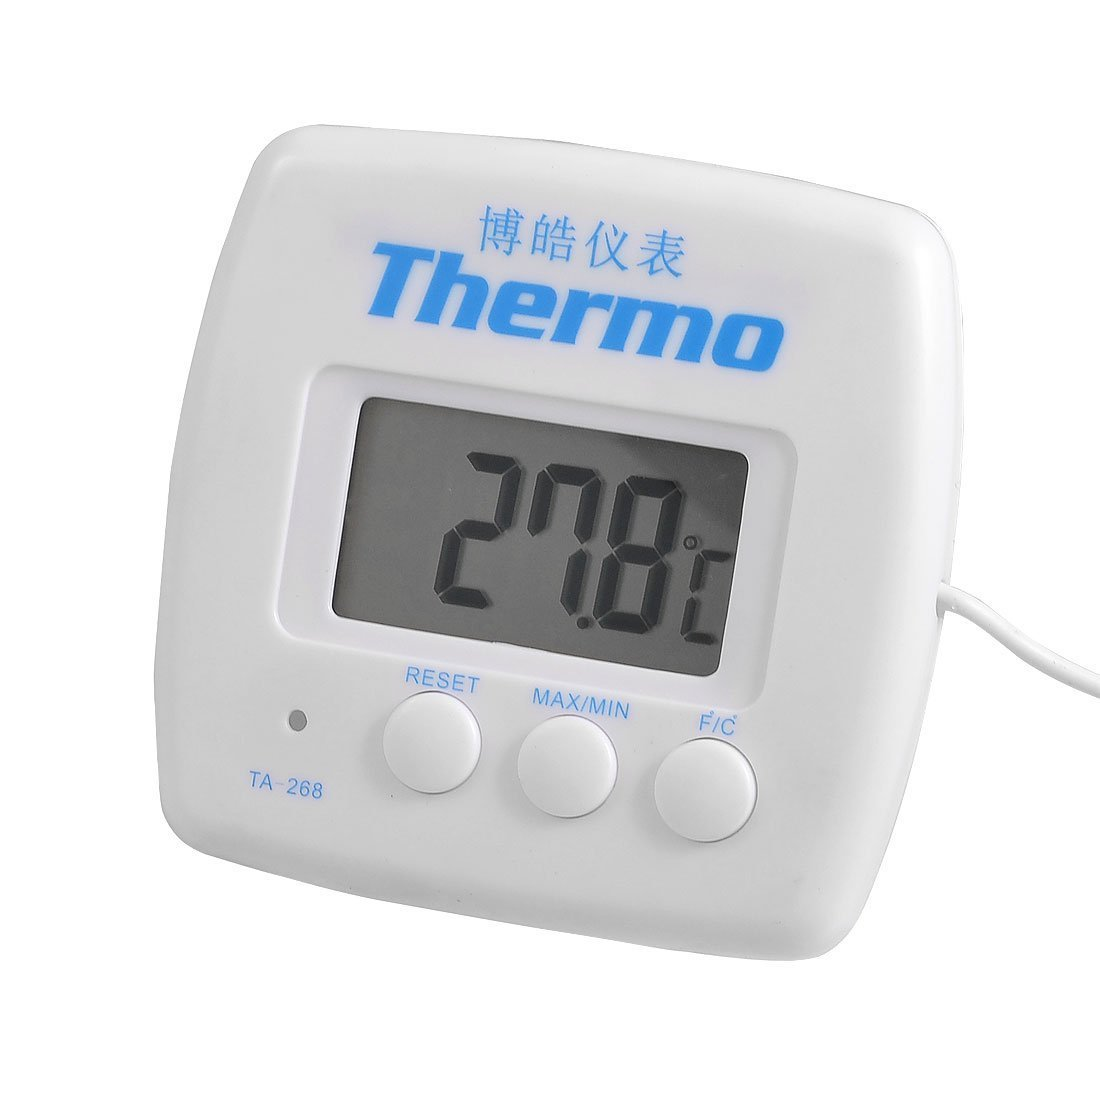 uxcell LCD Display Resettable Refrigerator Freezer Digital Thermometer